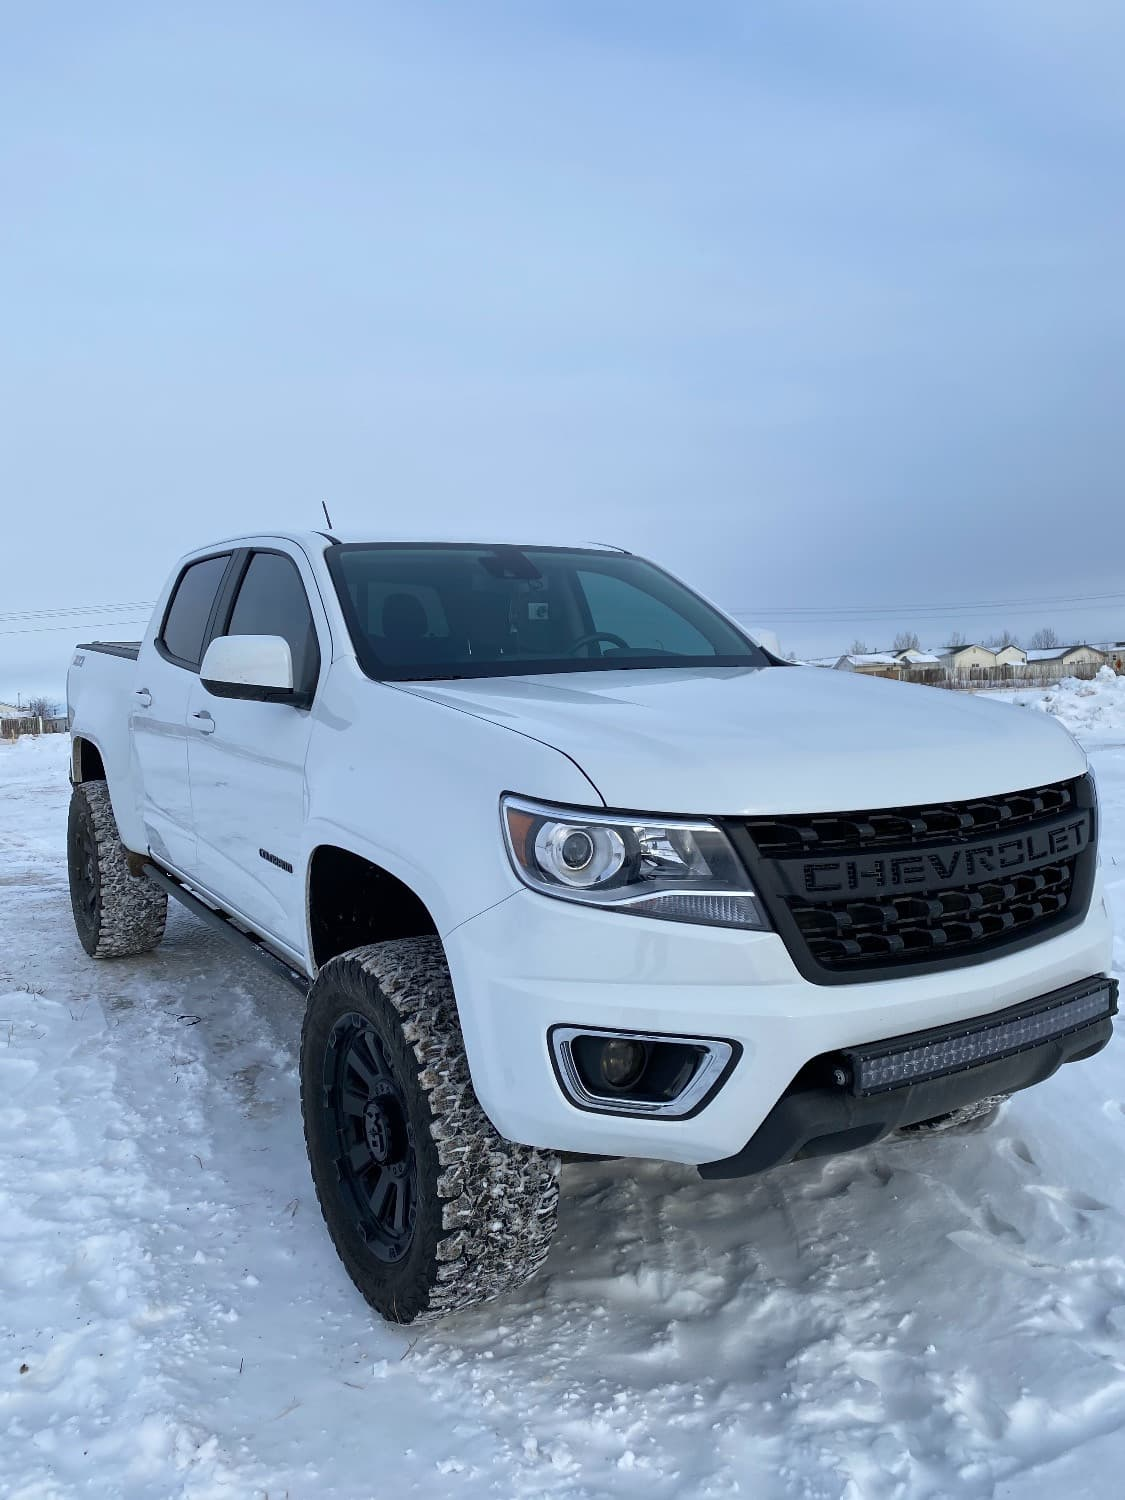 Chevy Colorado